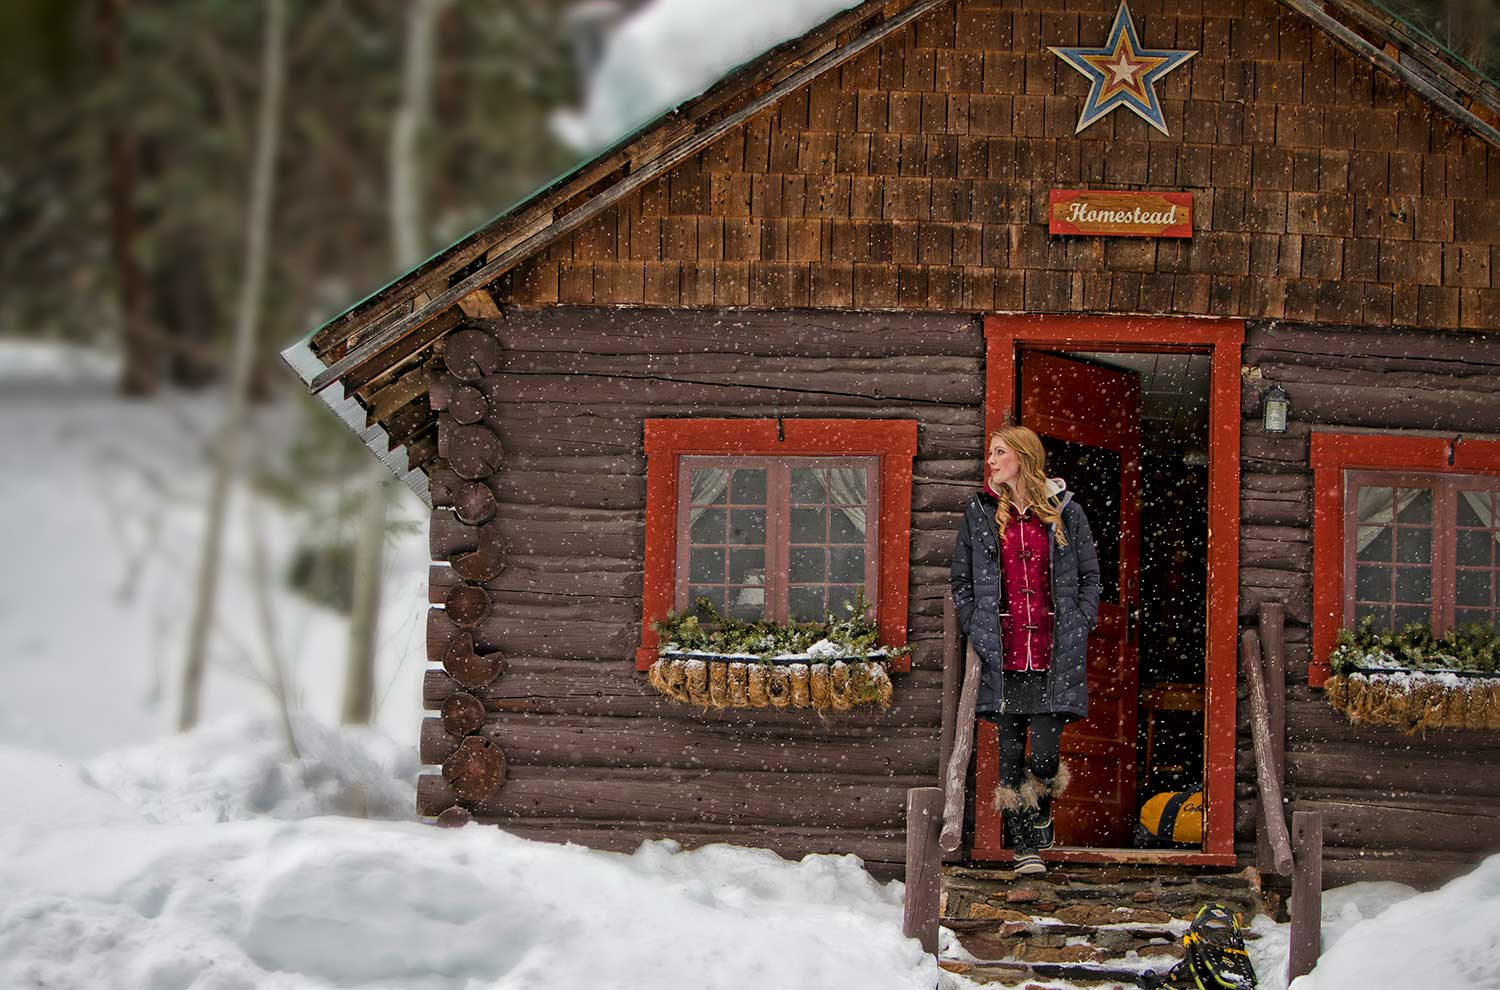 womant-in-doorway-of-homestead-cabin-with-snow-falling